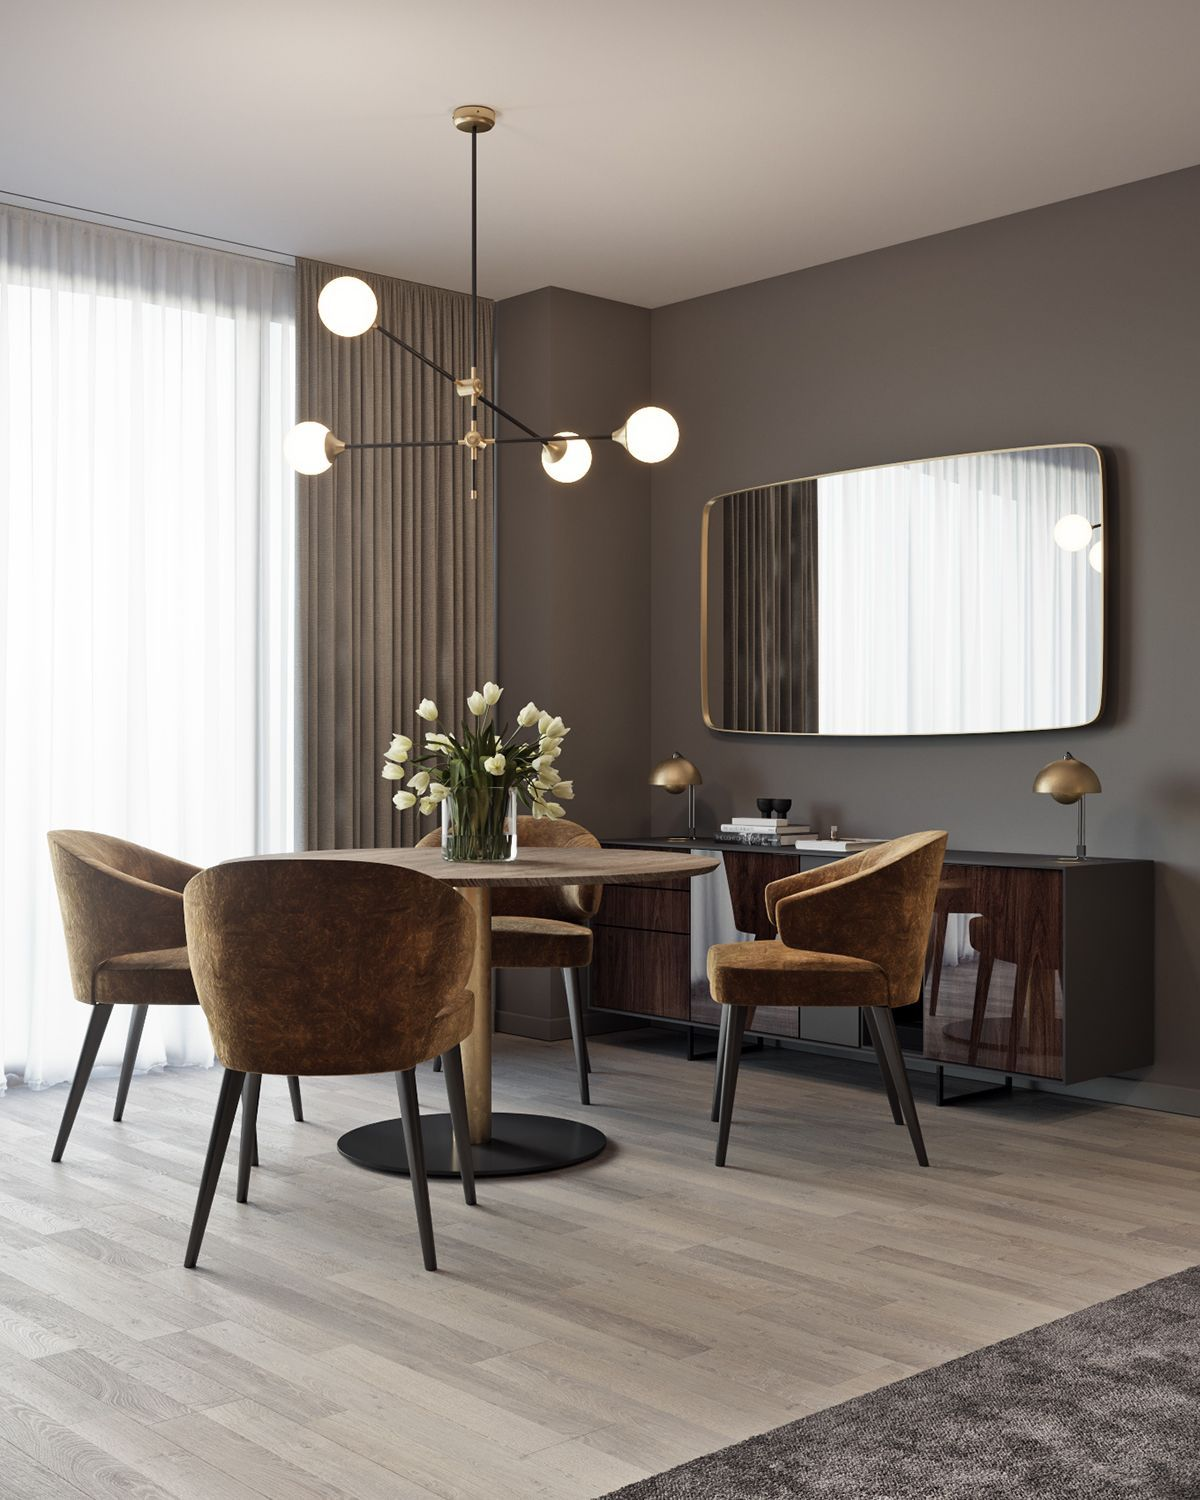 modern dining room wall decor ideas and designs farmhouse kitchen dinning also best apartments images in home design interiors rh pinterest